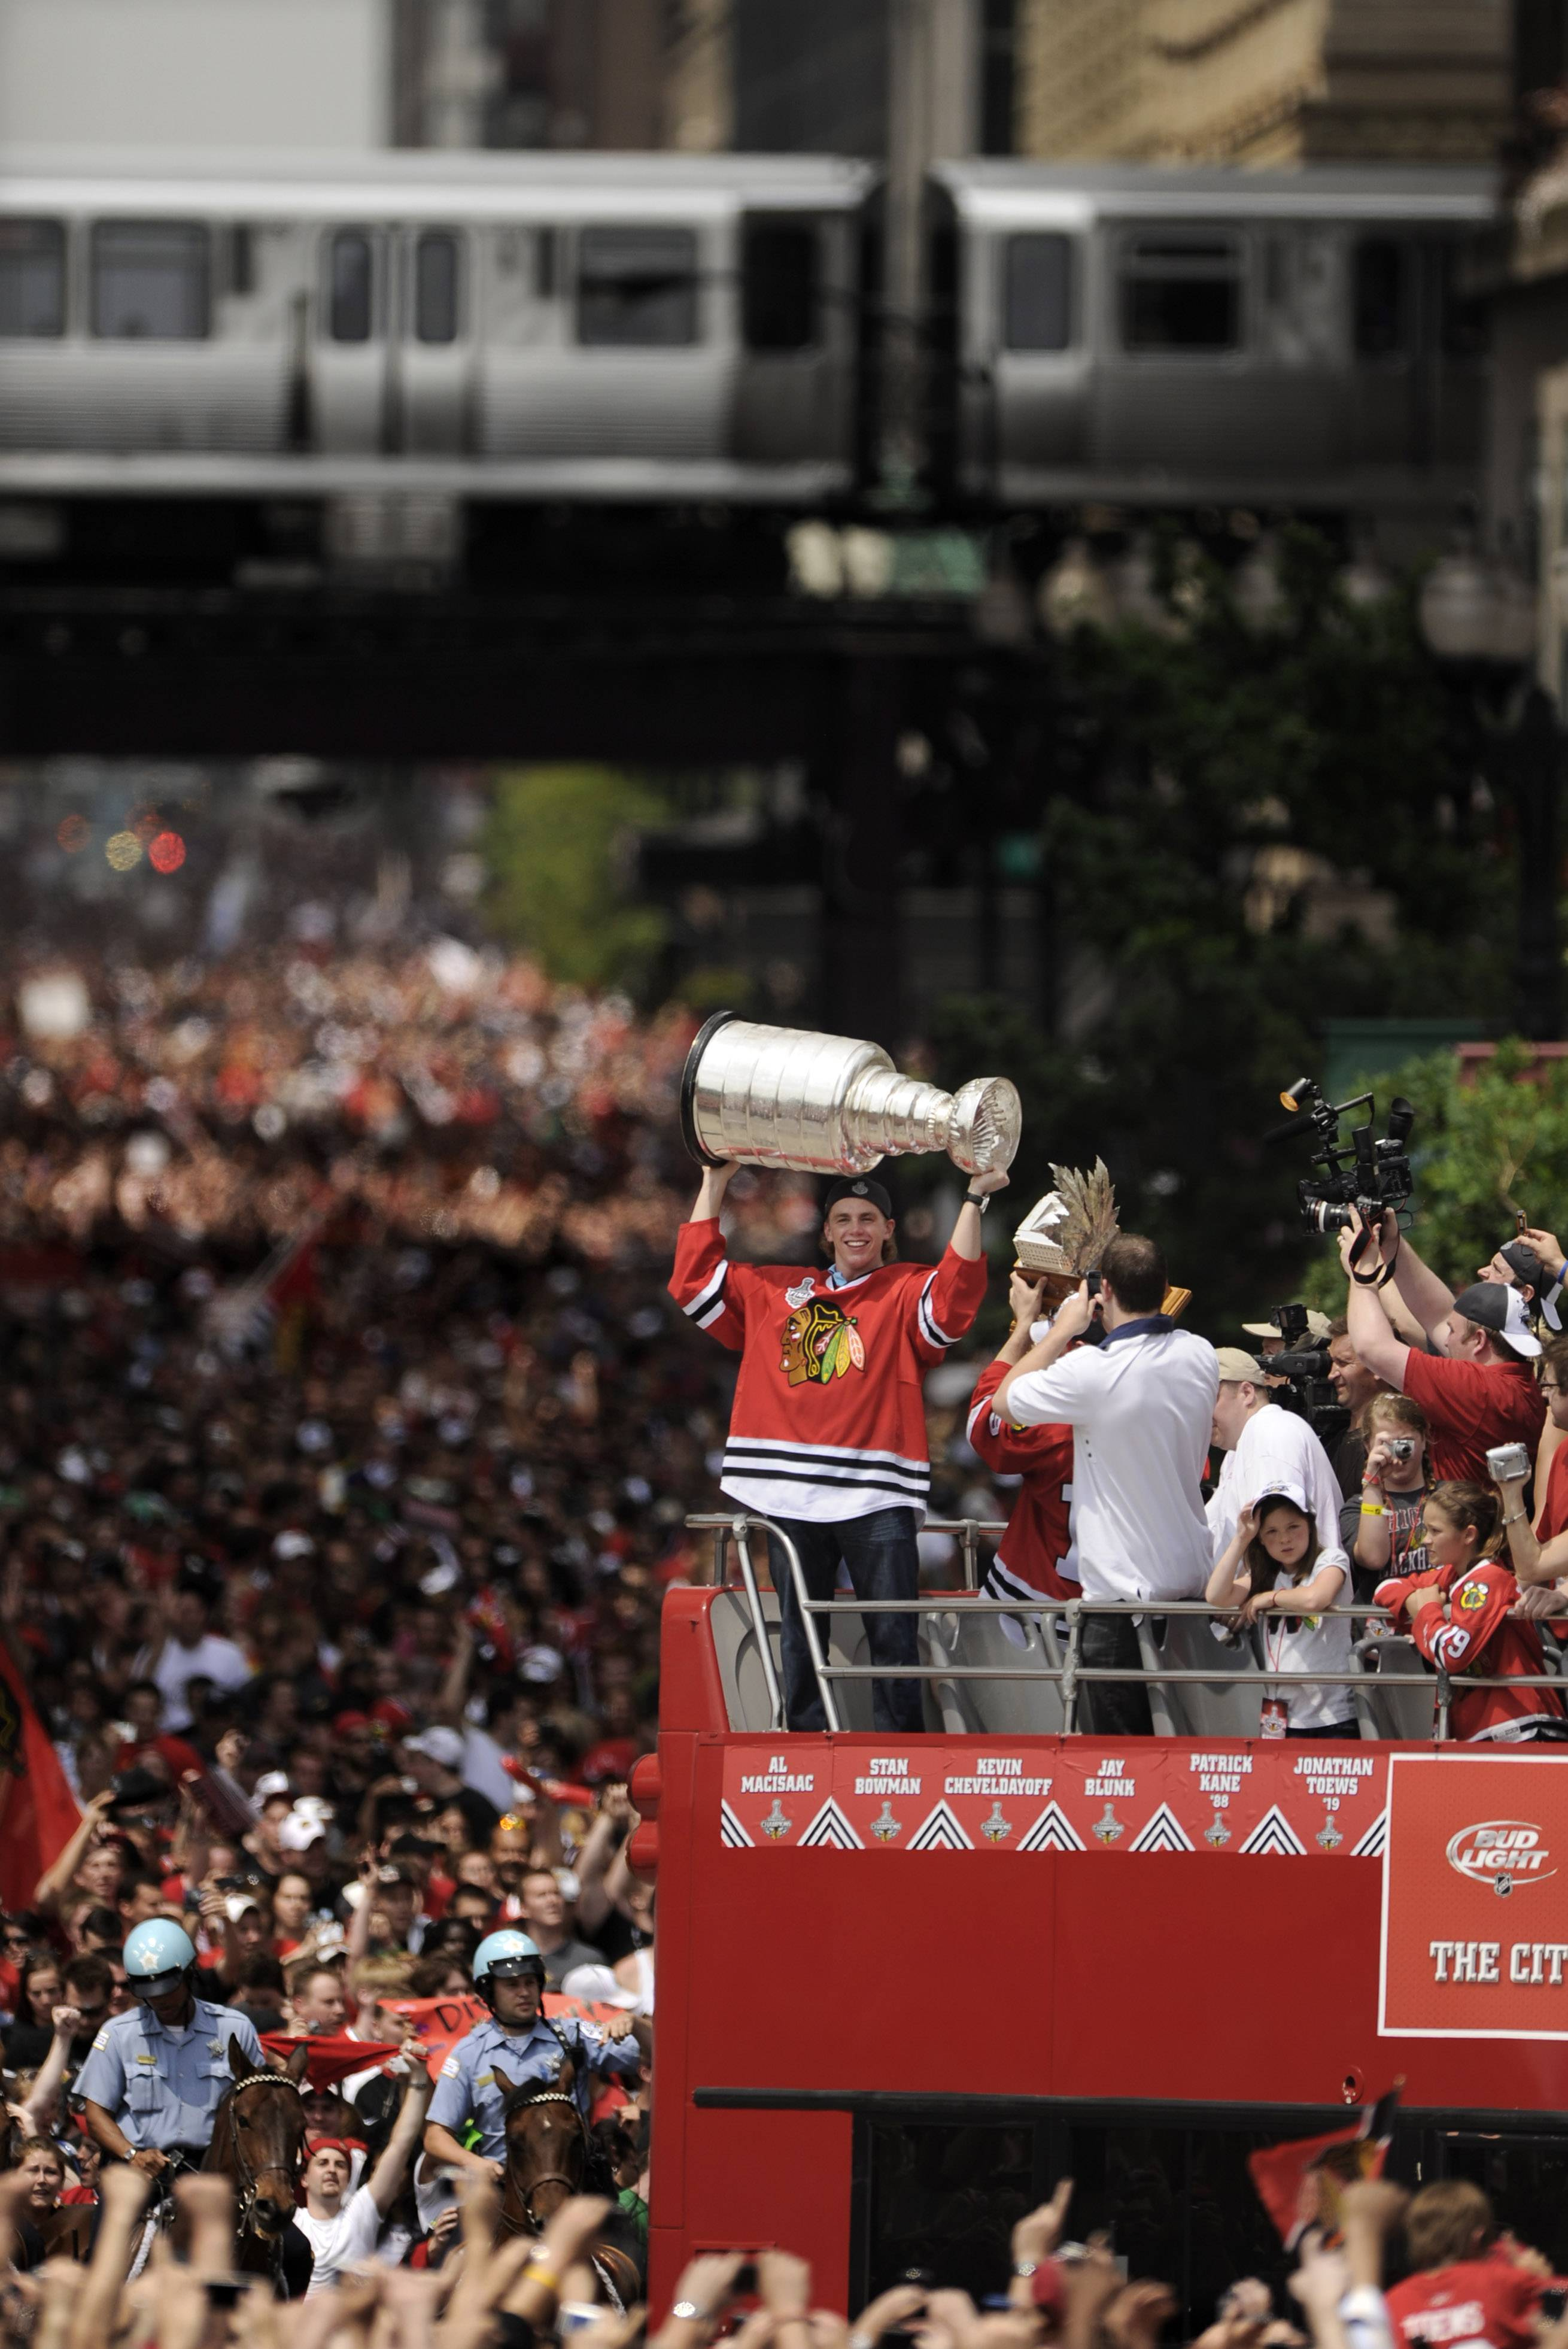 The Chicago Blackhawks' Patrick Kane hoists the Stanley Cup while celebrating with fans during the 2010 parade.